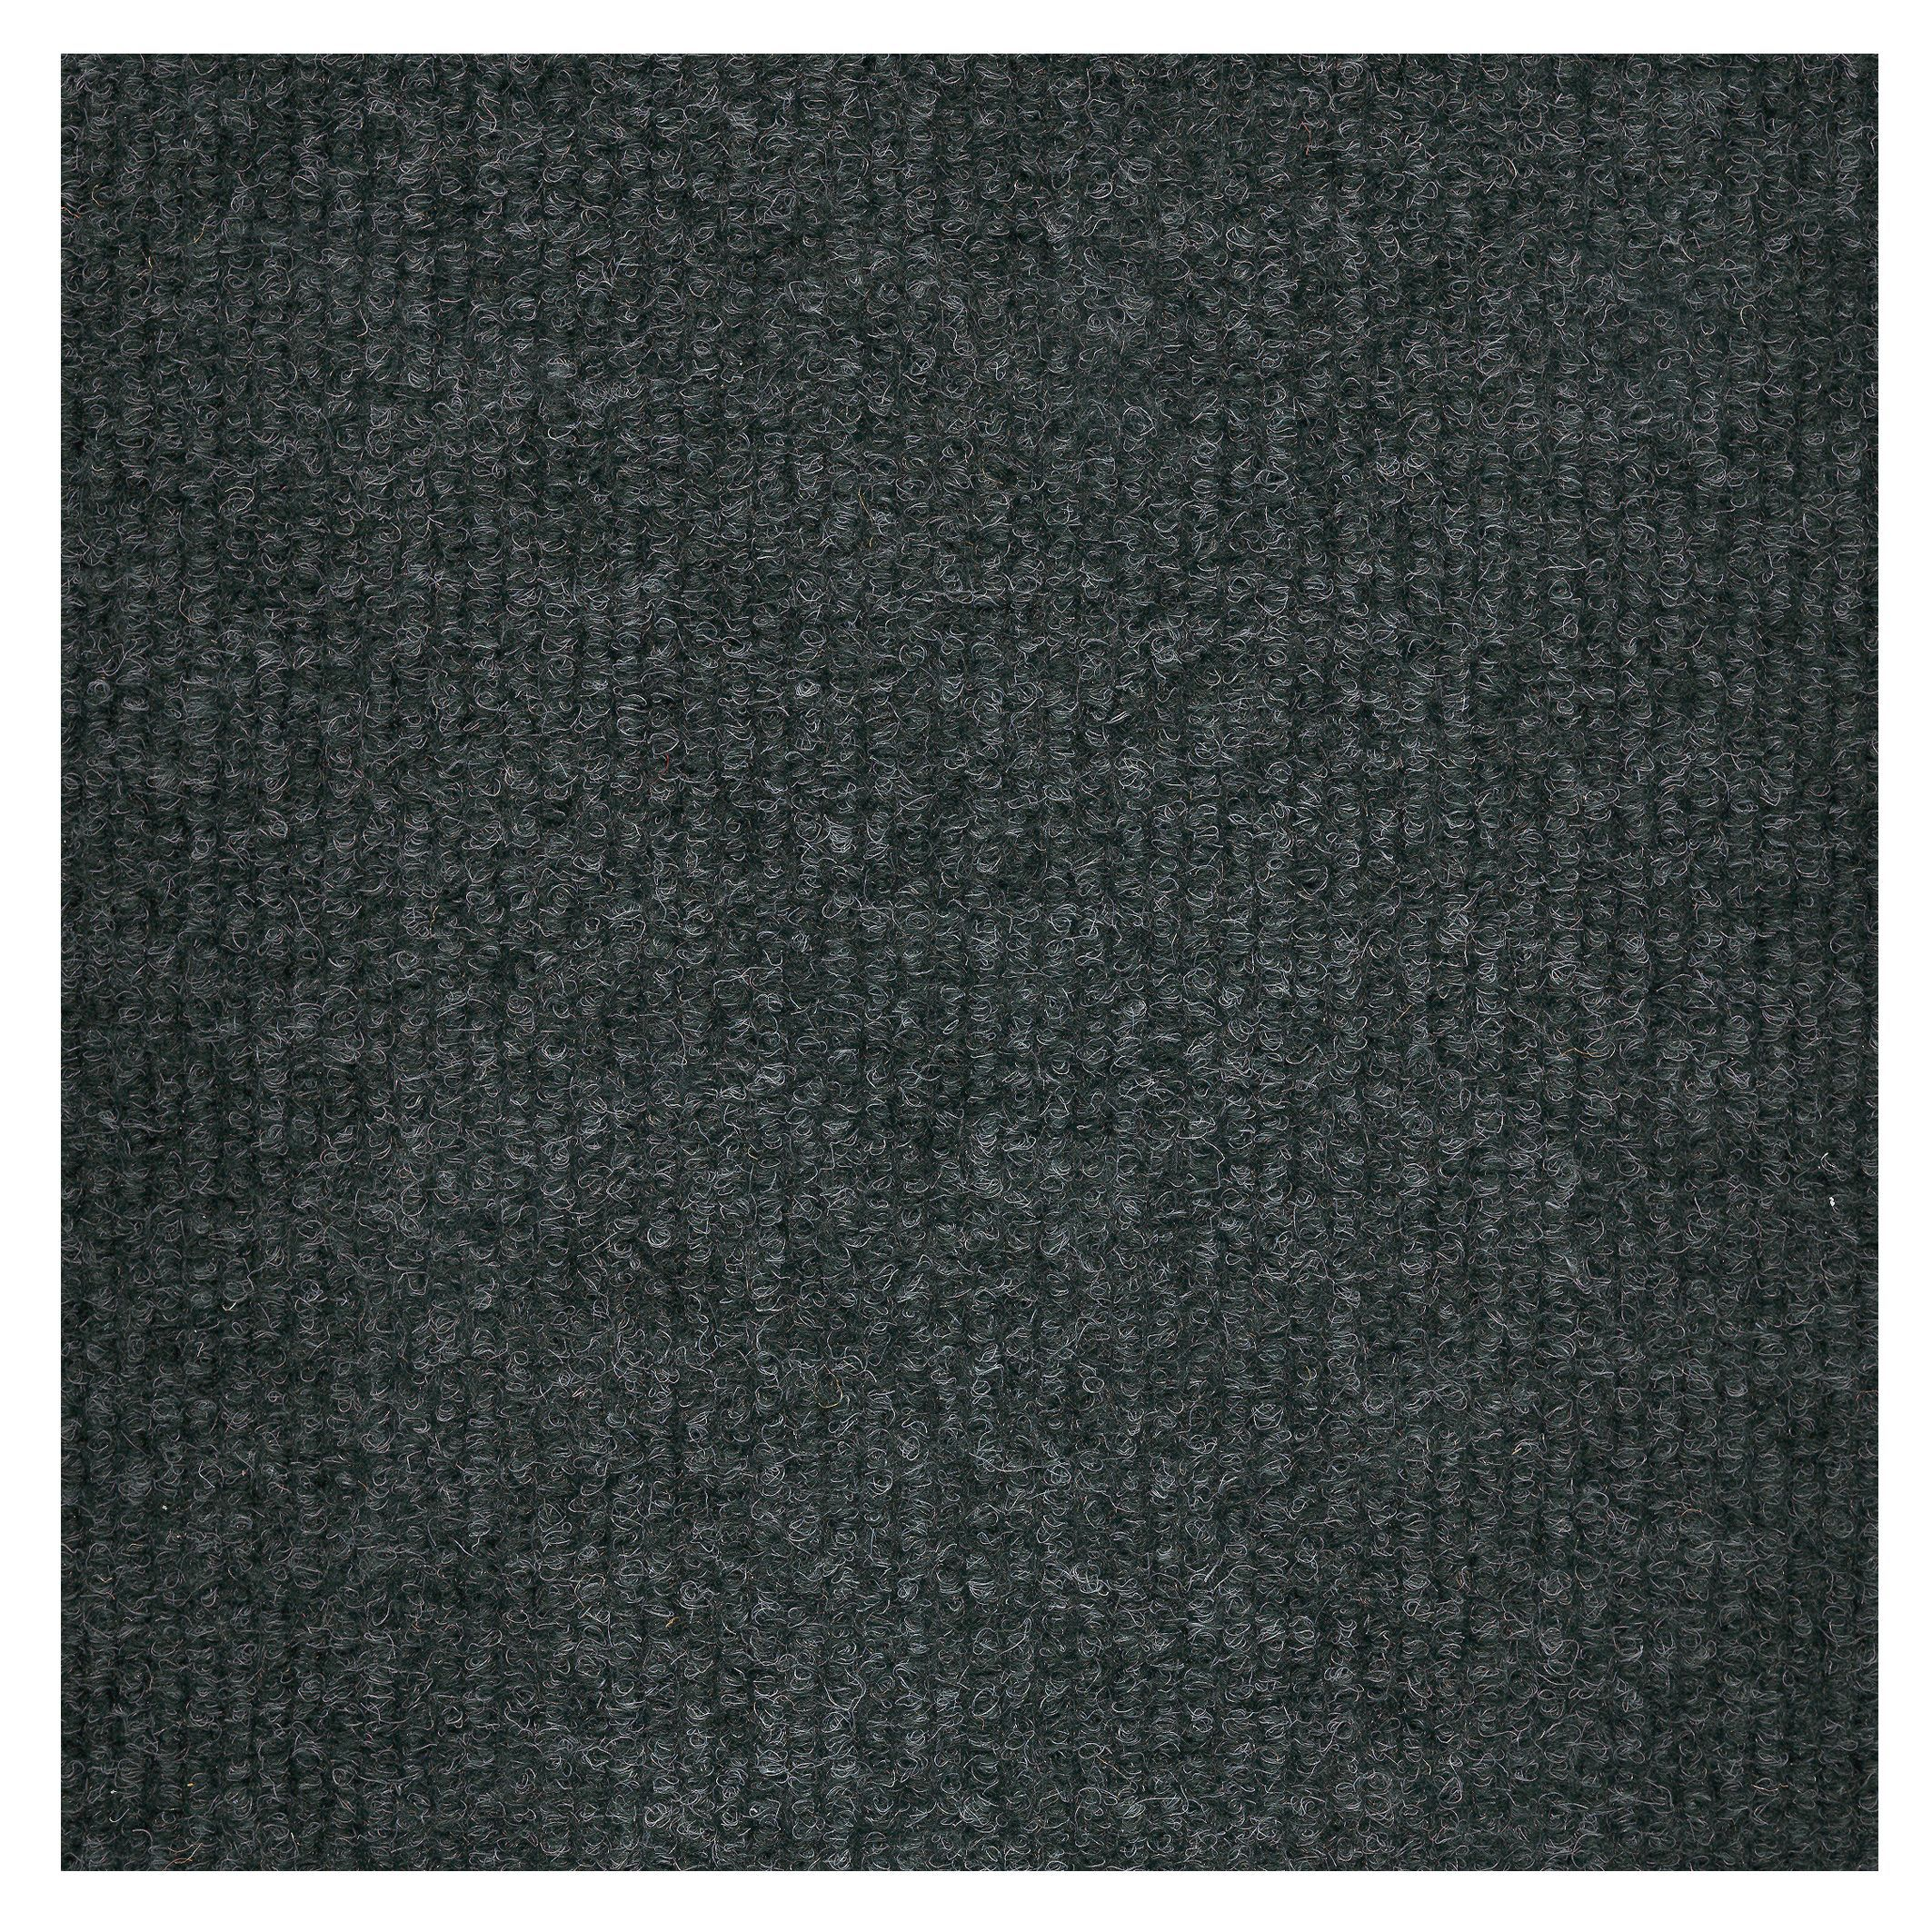 B Amp Q Green Loop Pile Carpet Tile Pack Of 10 Departments